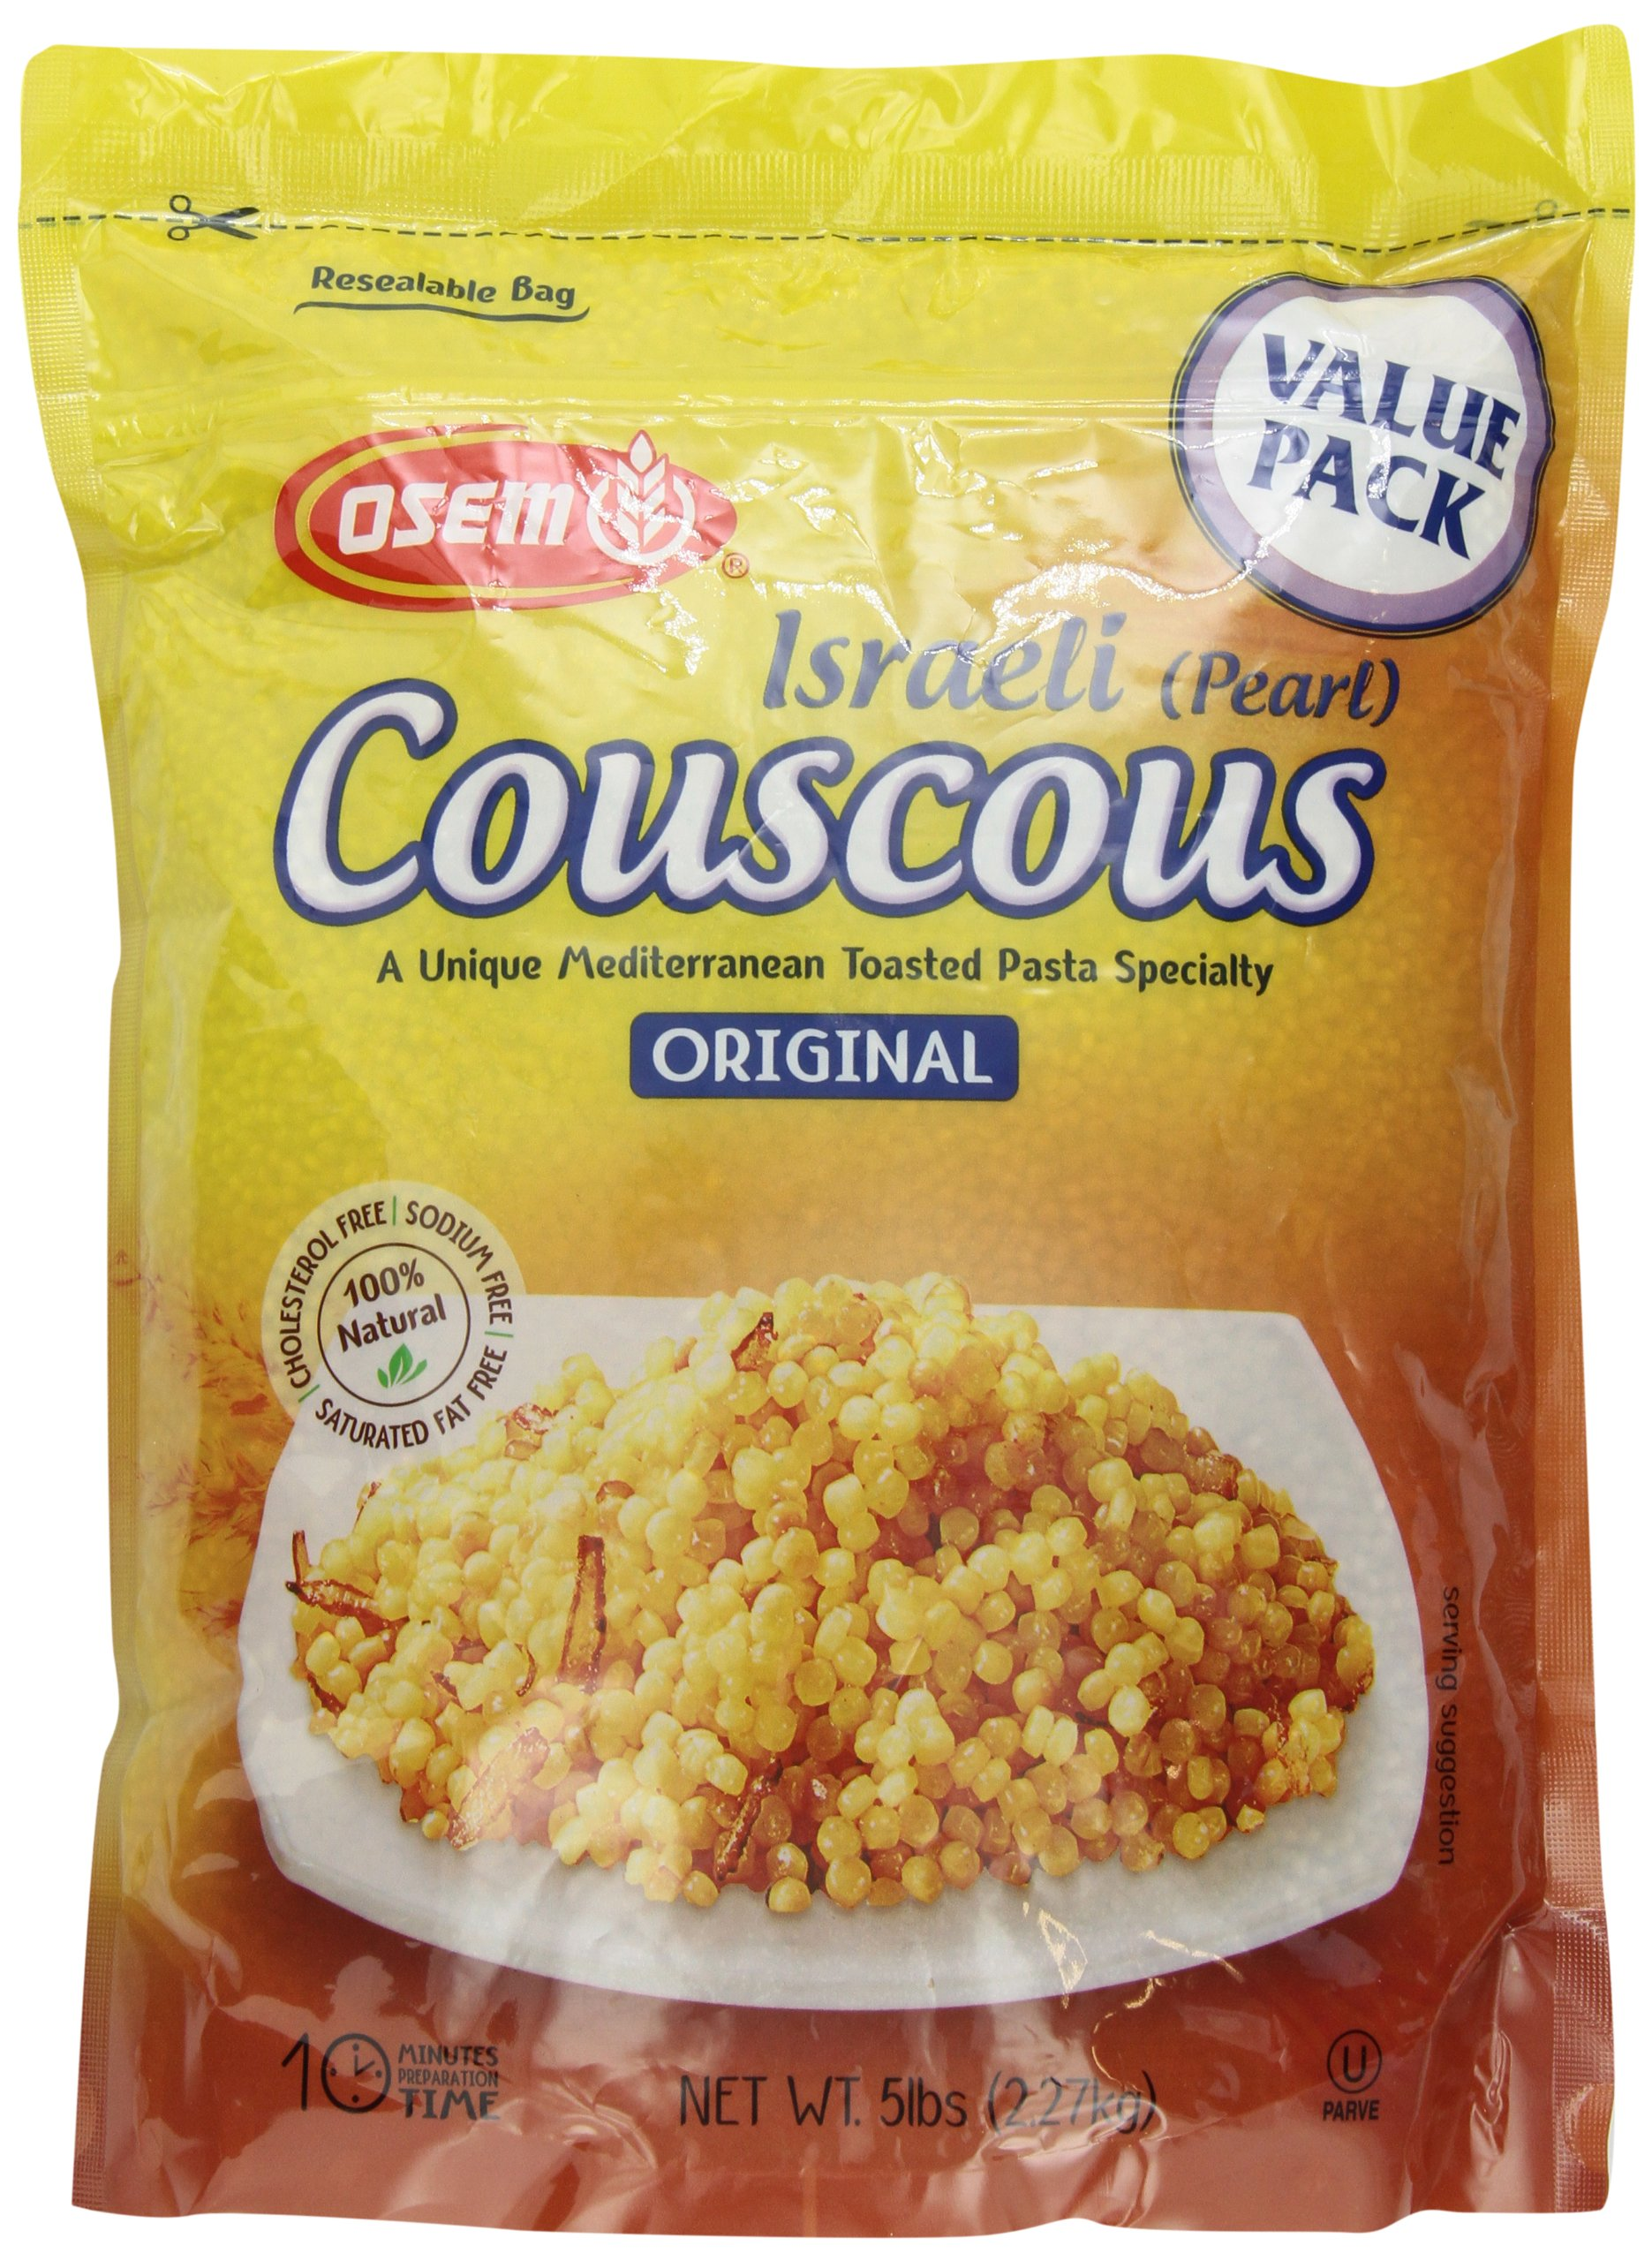 The Original Israeli Couscous by Osem Pearl Couscous 5lb/80oz Resealable Bag